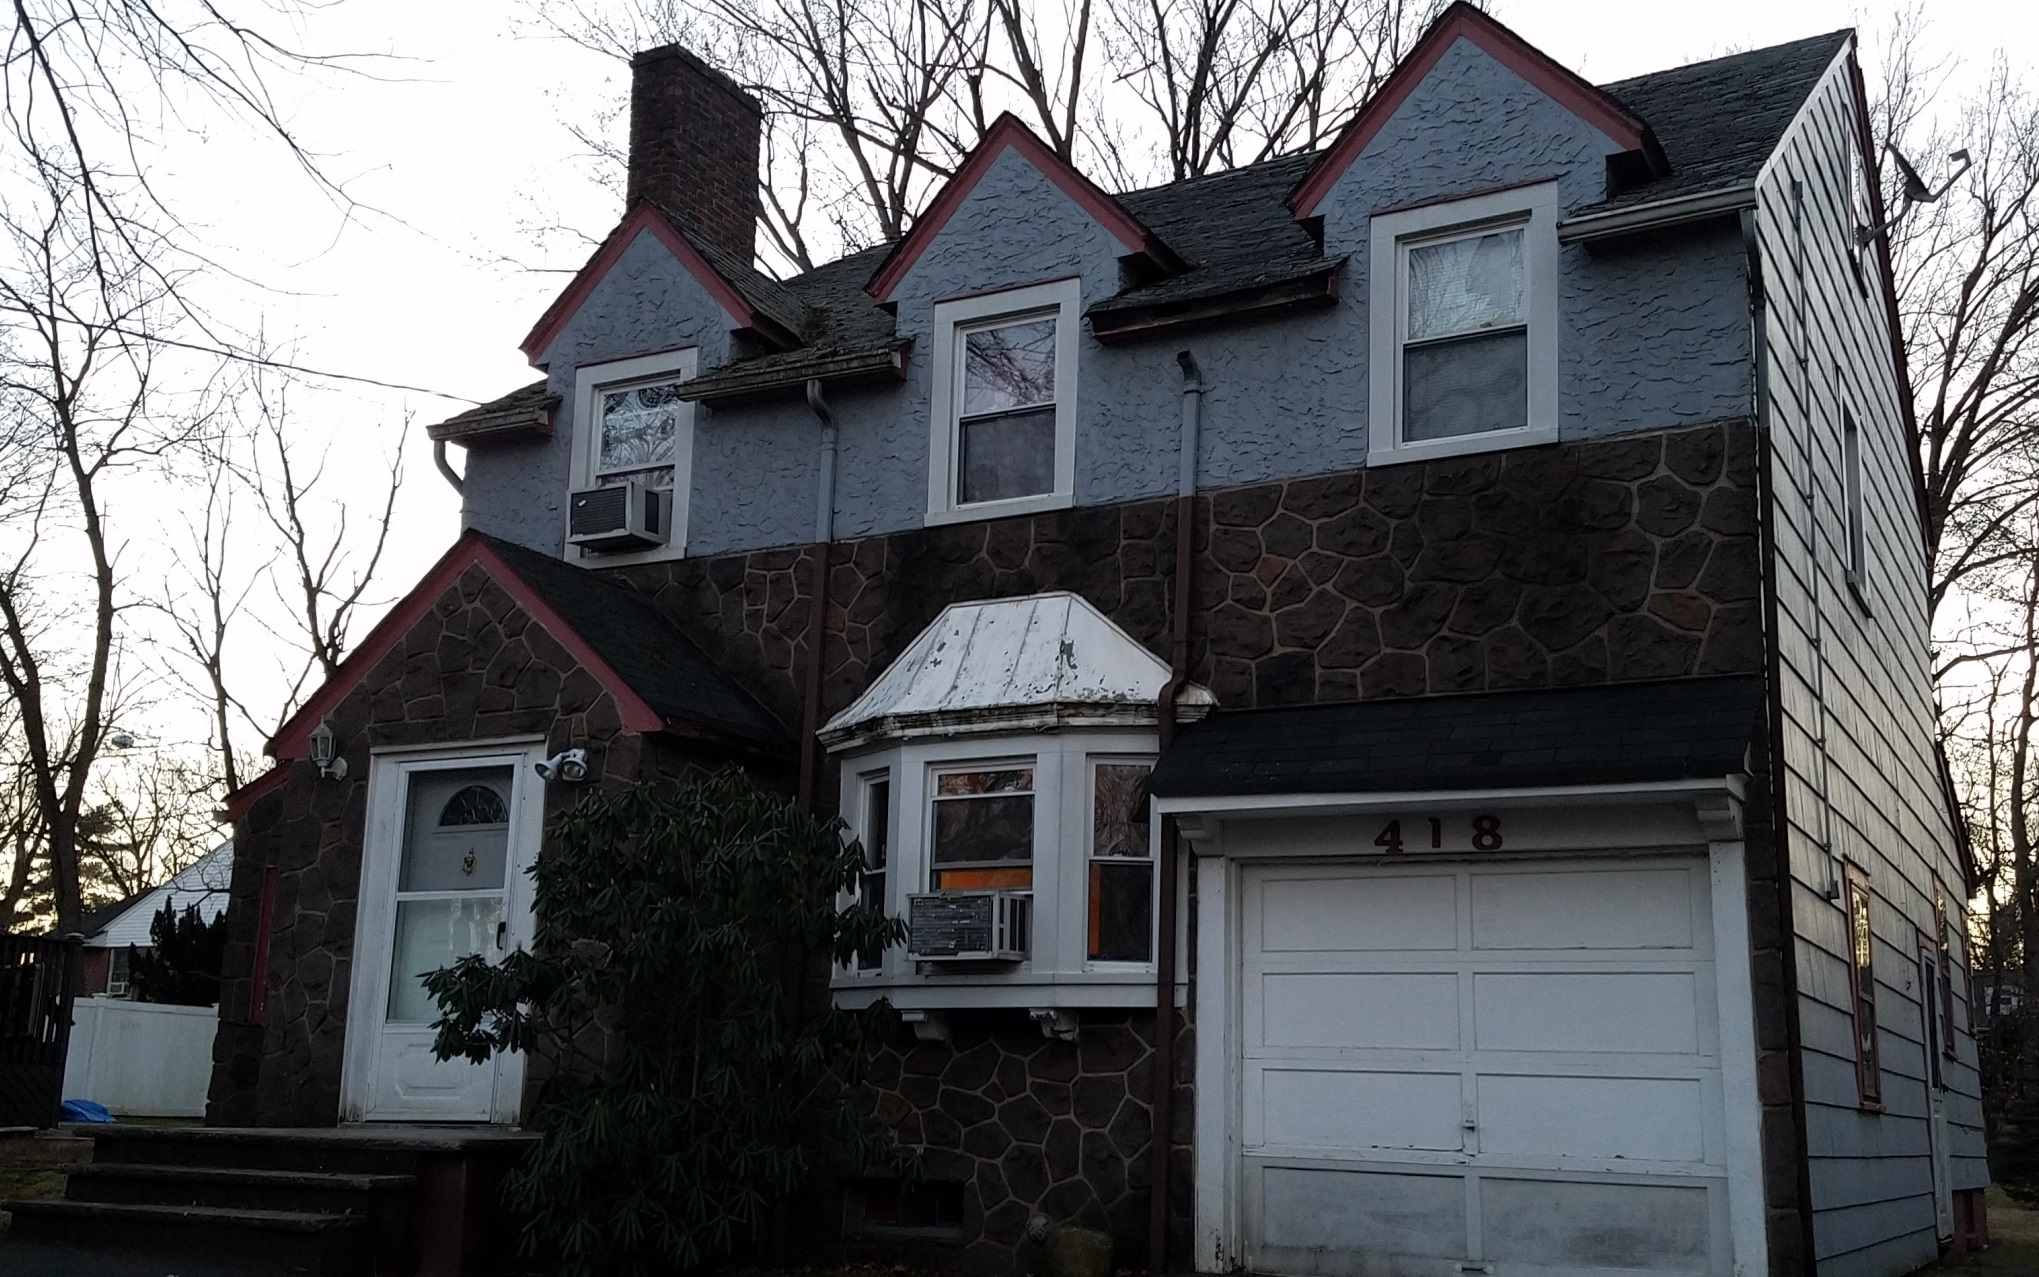 NEW REO (AUCTION) – 418 Liberty Rd, Englewood, NJ 07631 $309,000